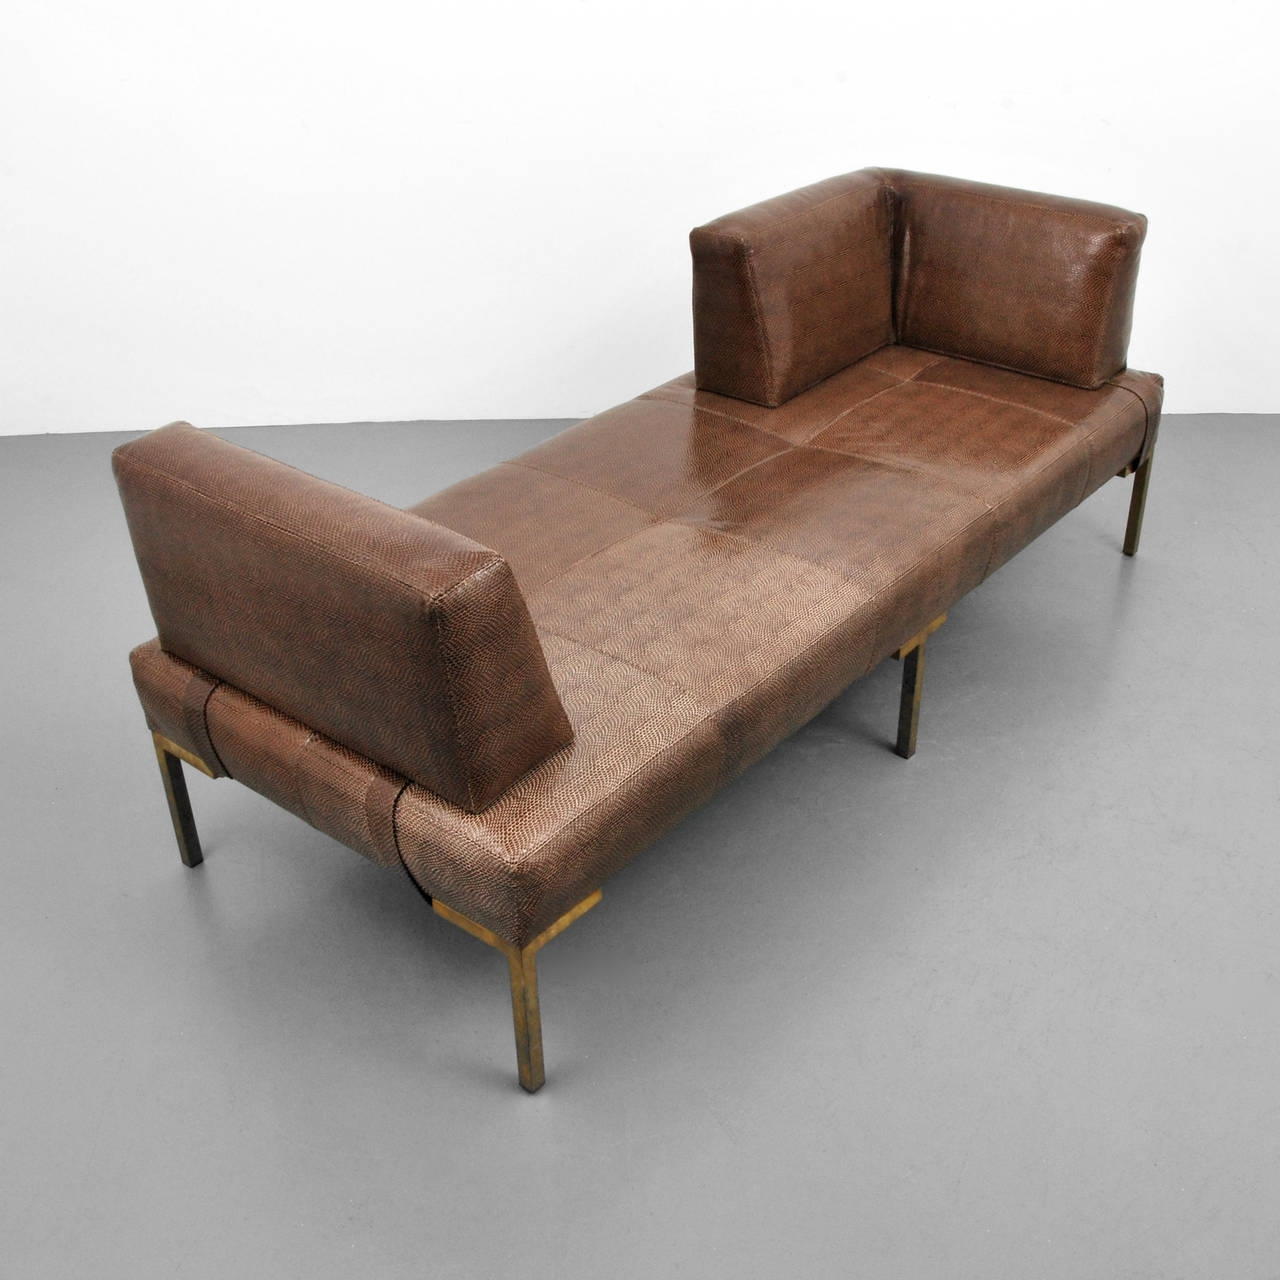 Famous Modern Chaises In Luigi Gentile Leather Daybeds Or Chaise Lounges, Two Available (View 5 of 15)